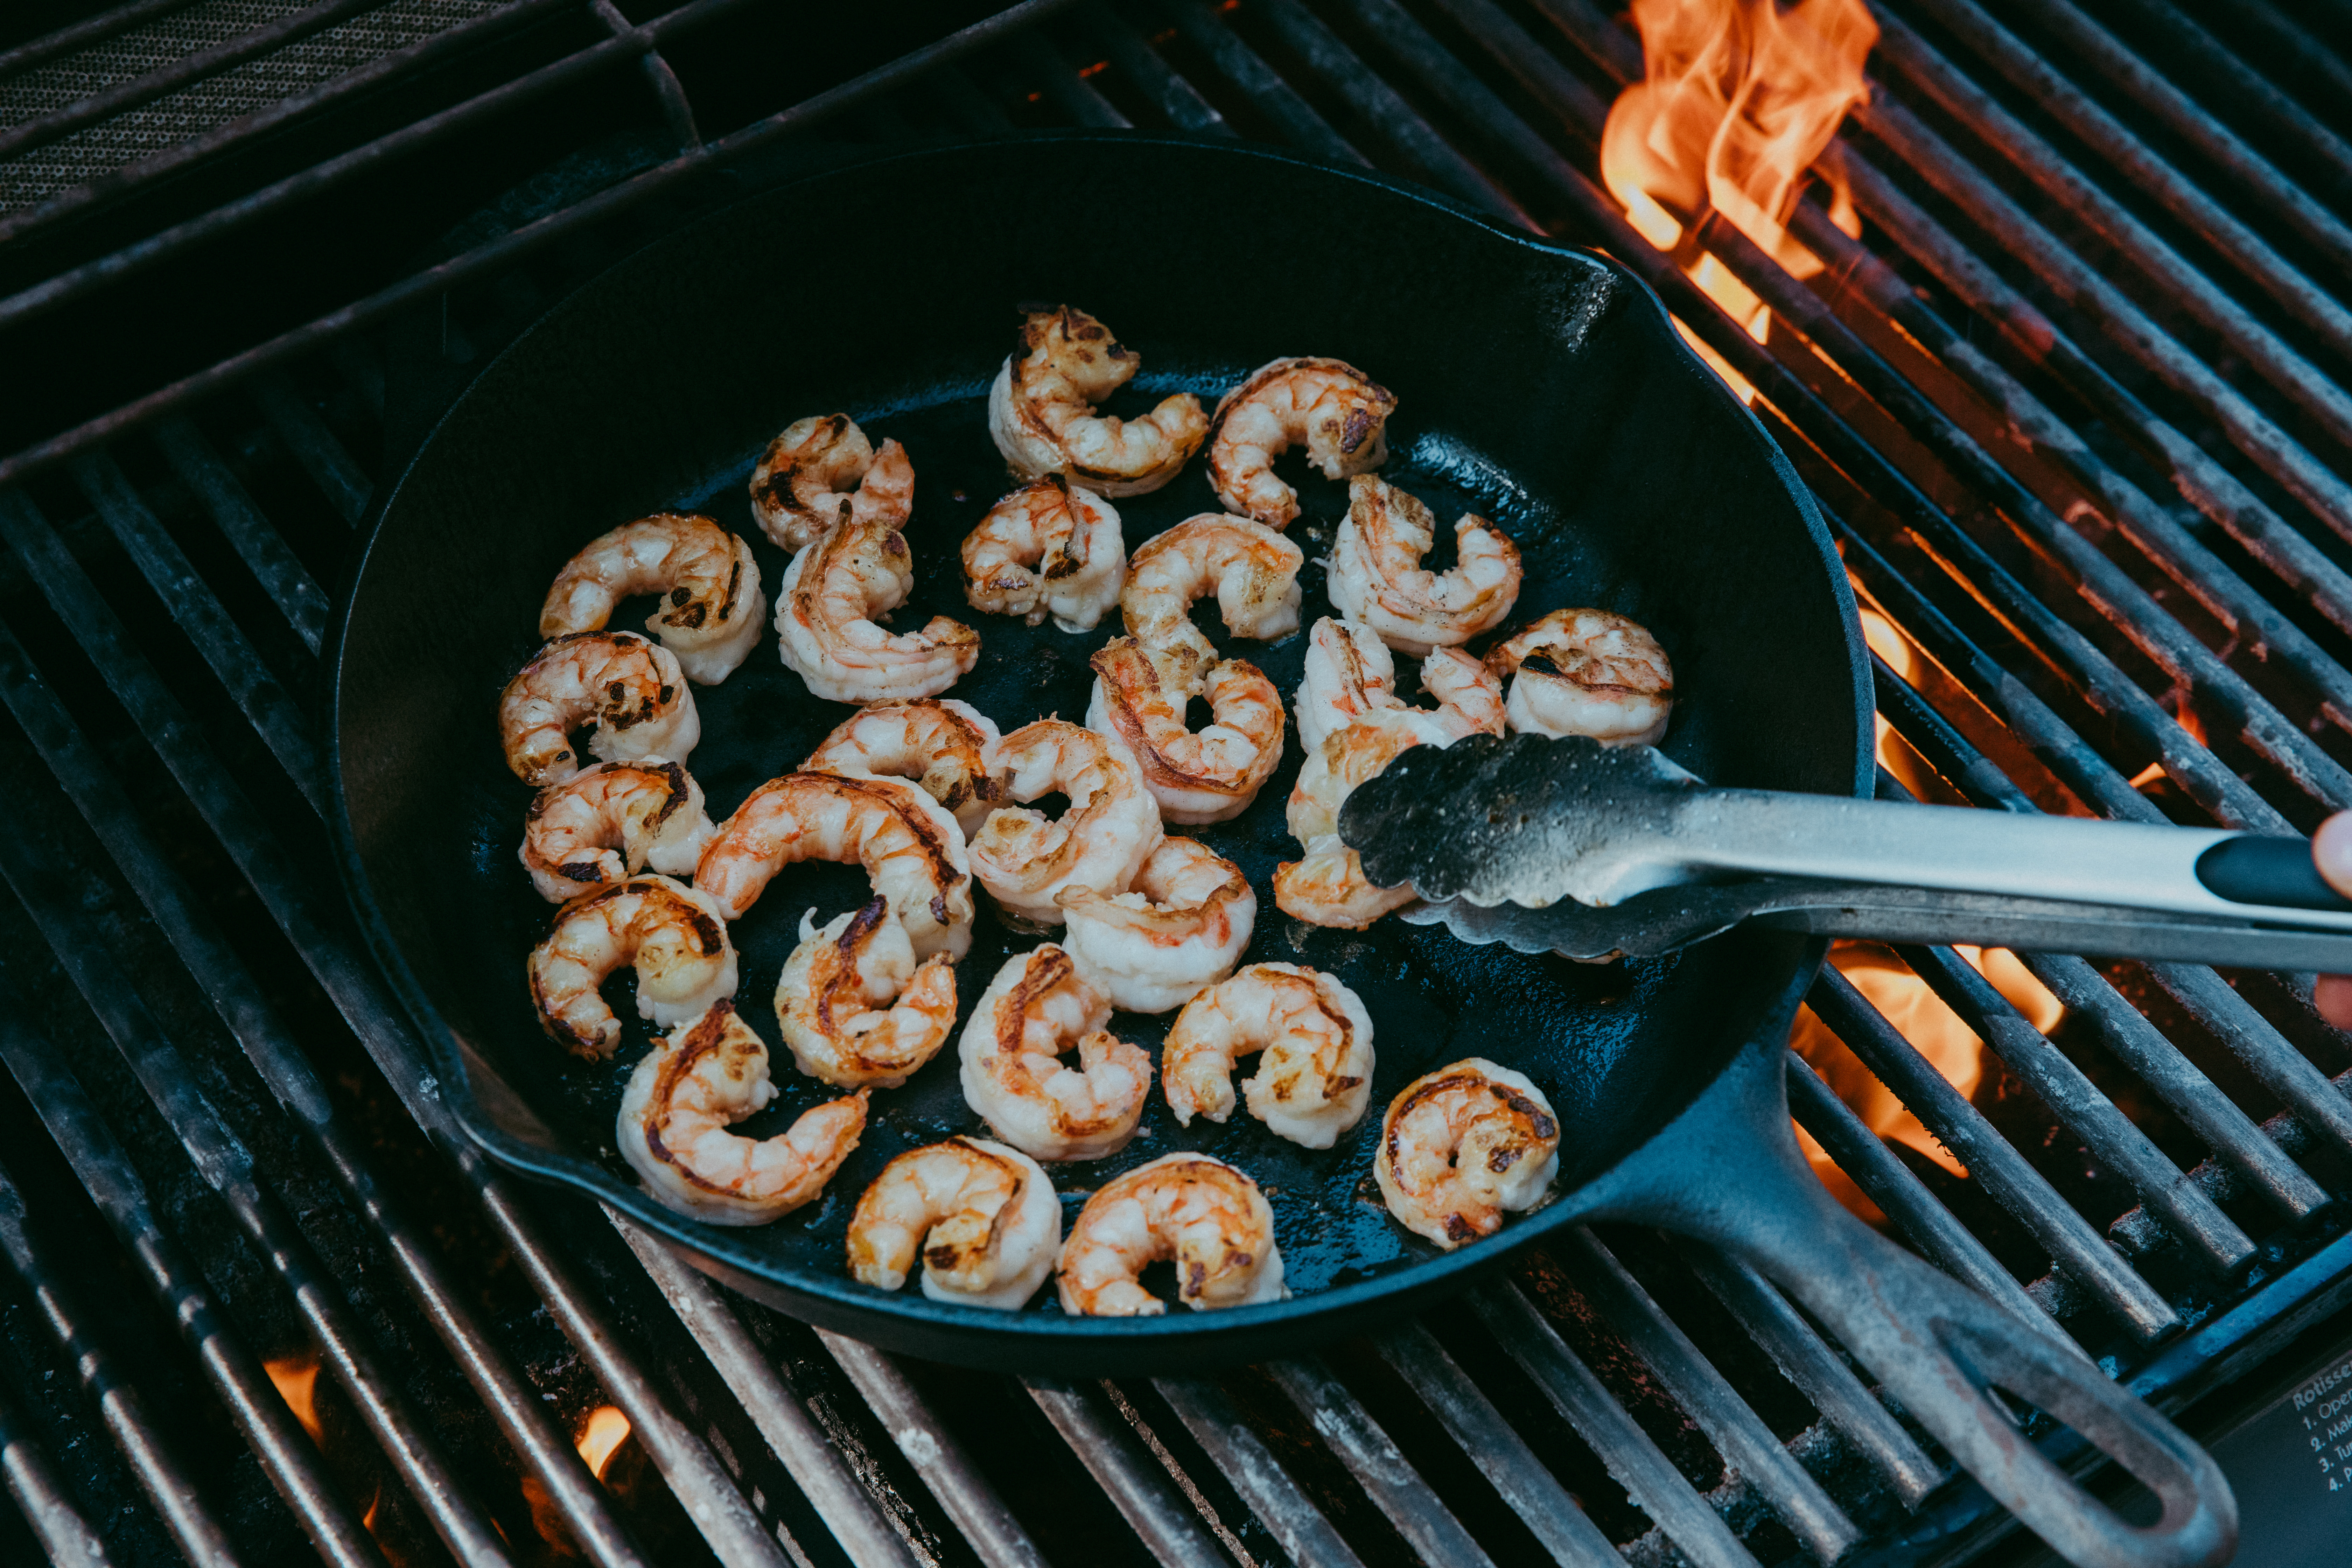 Seasoned shrimp being flipped with tongs in a cast iron on a grill.